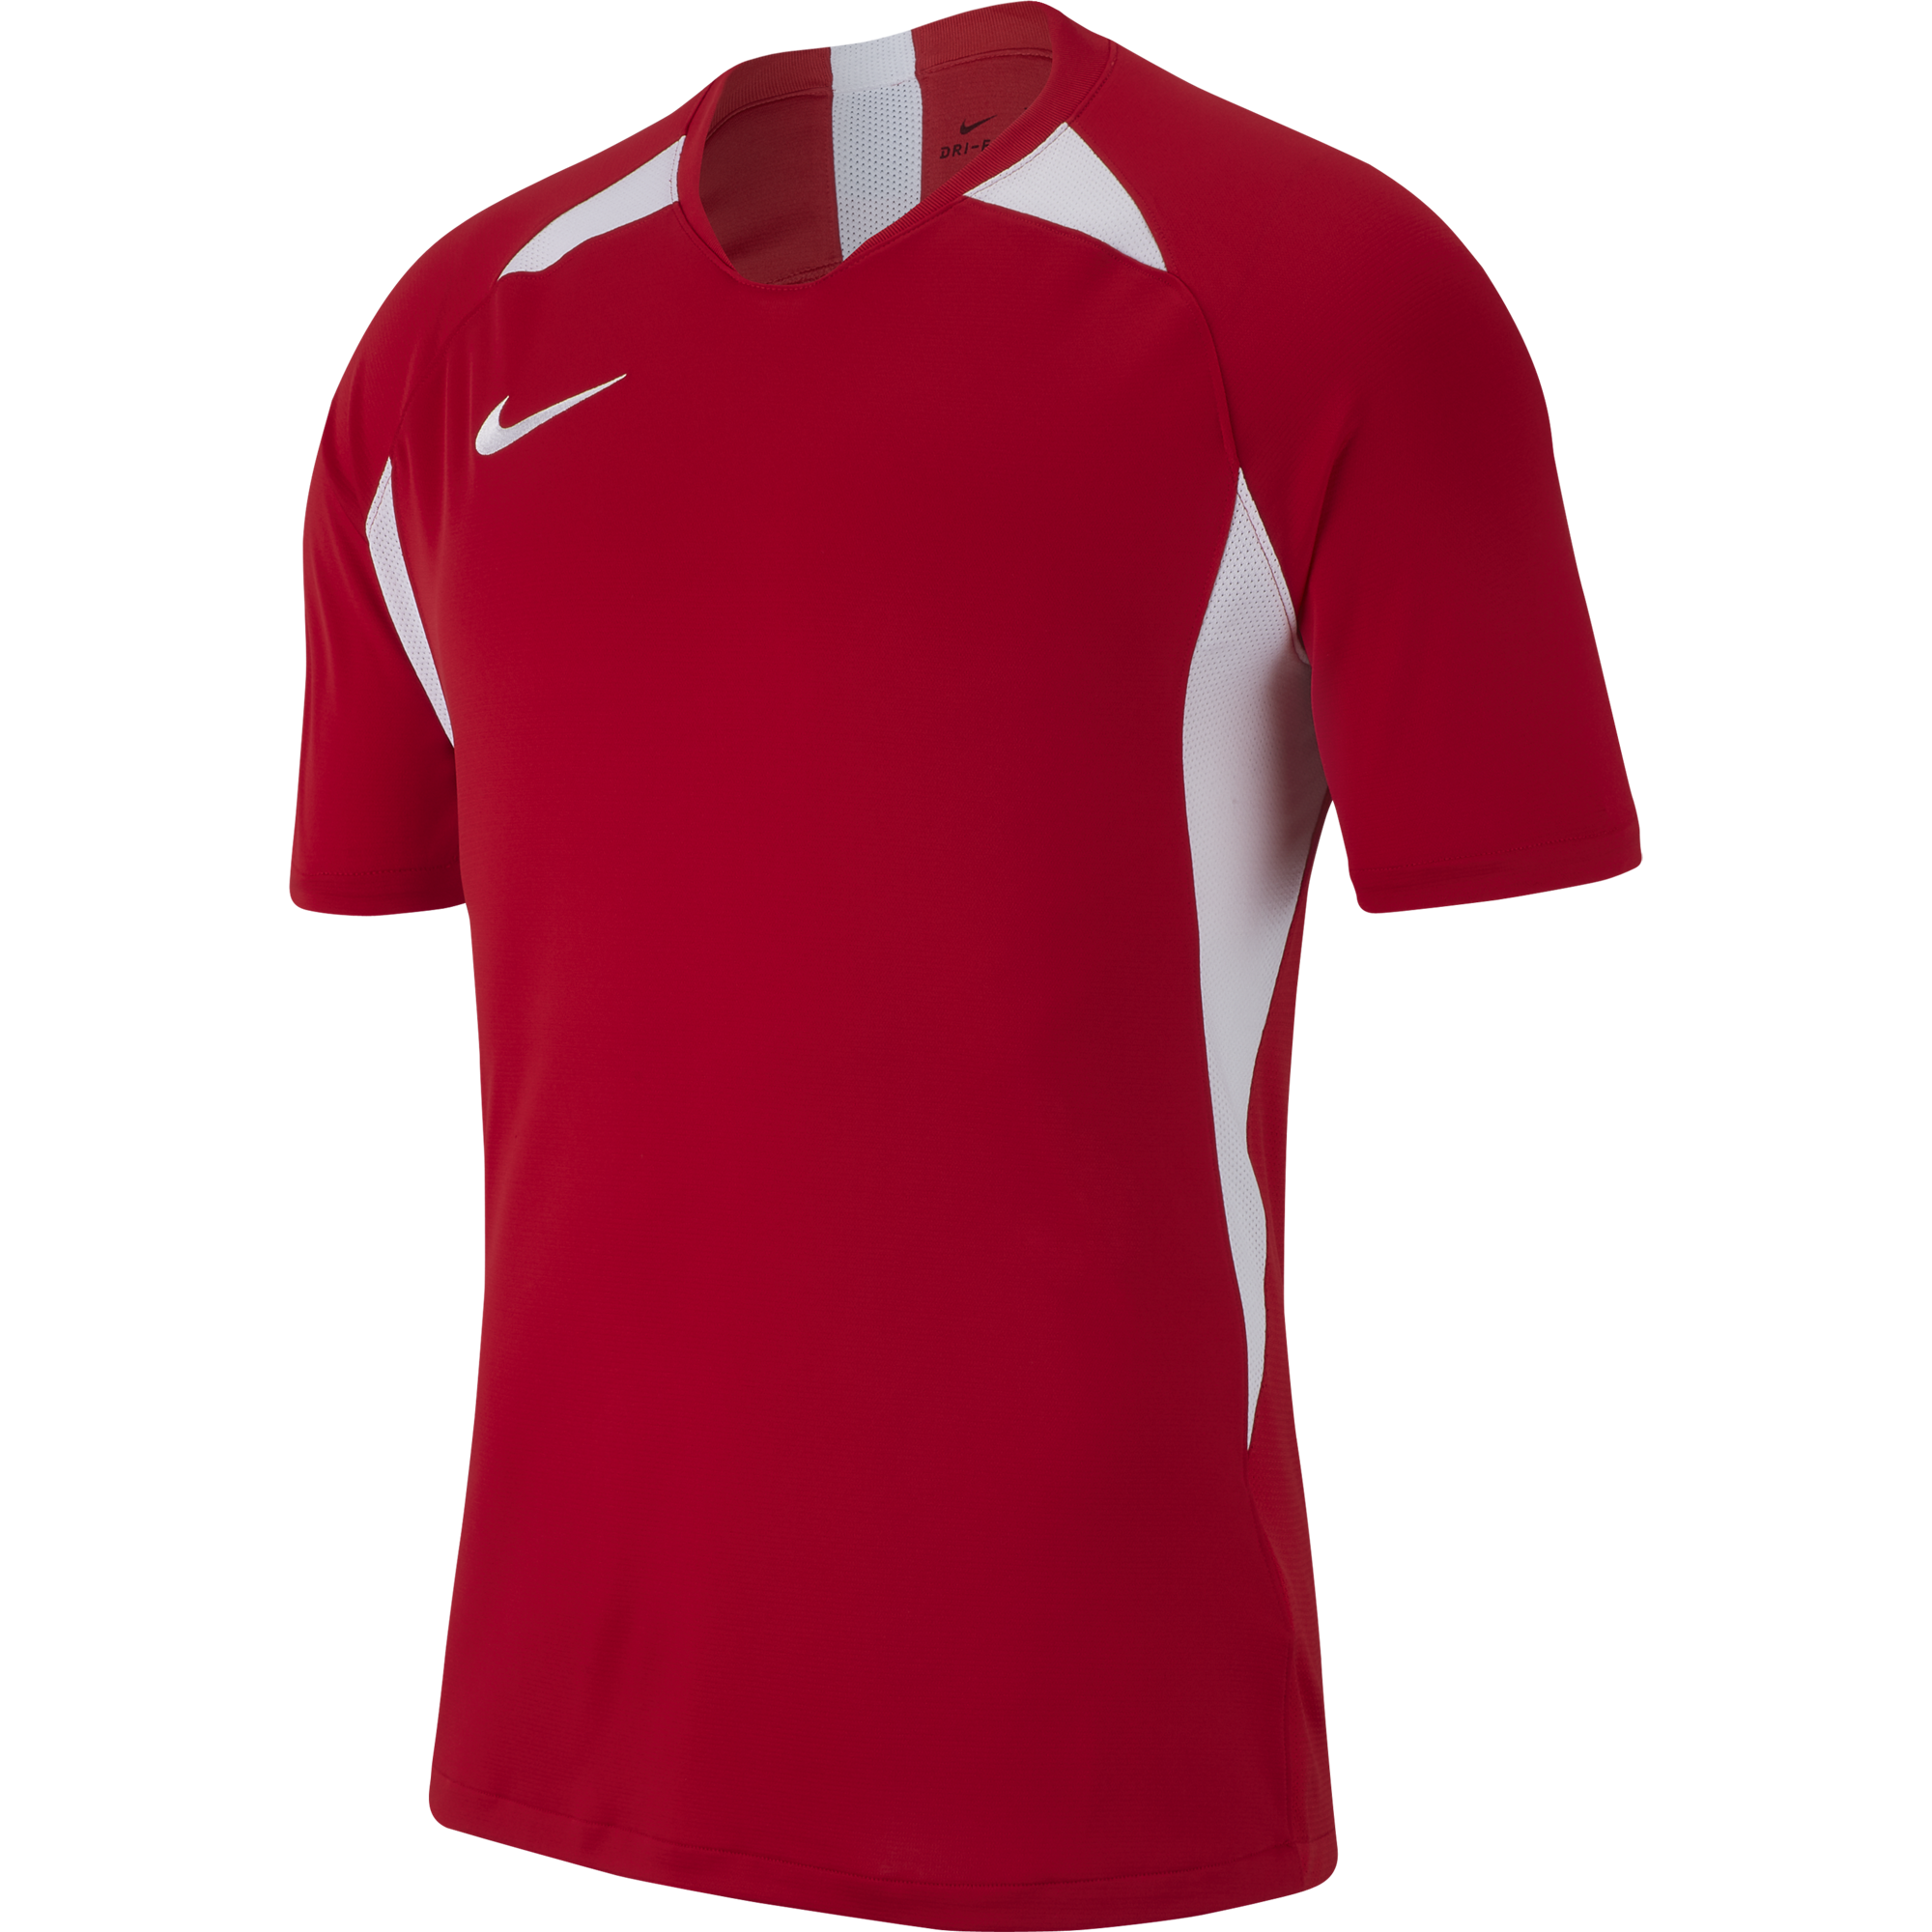 nike legend jersey uni red white  15984 p